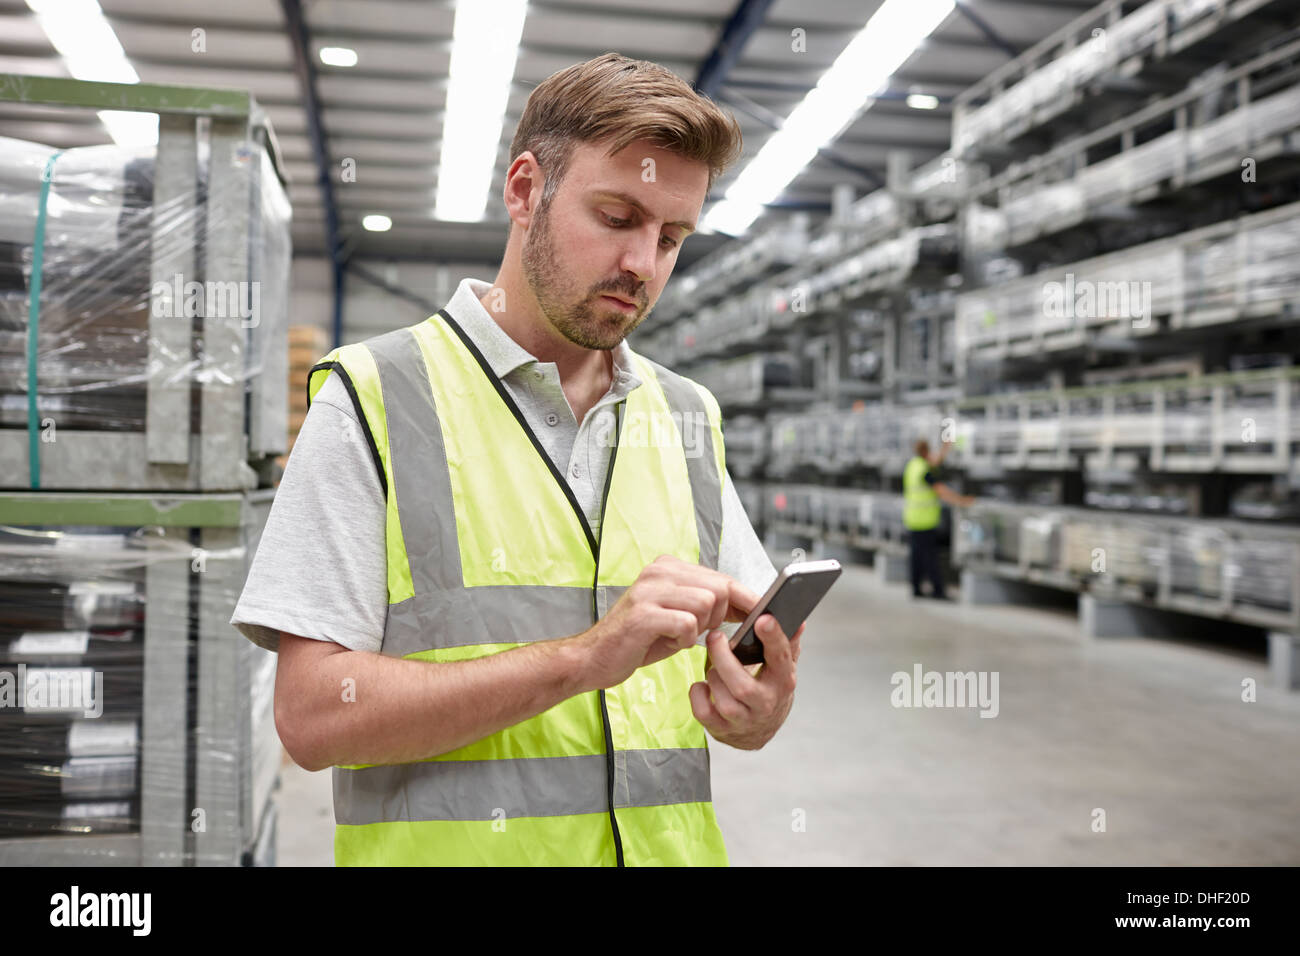 Portrait of worker using mobile phone in engineering warehouse - Stock Image